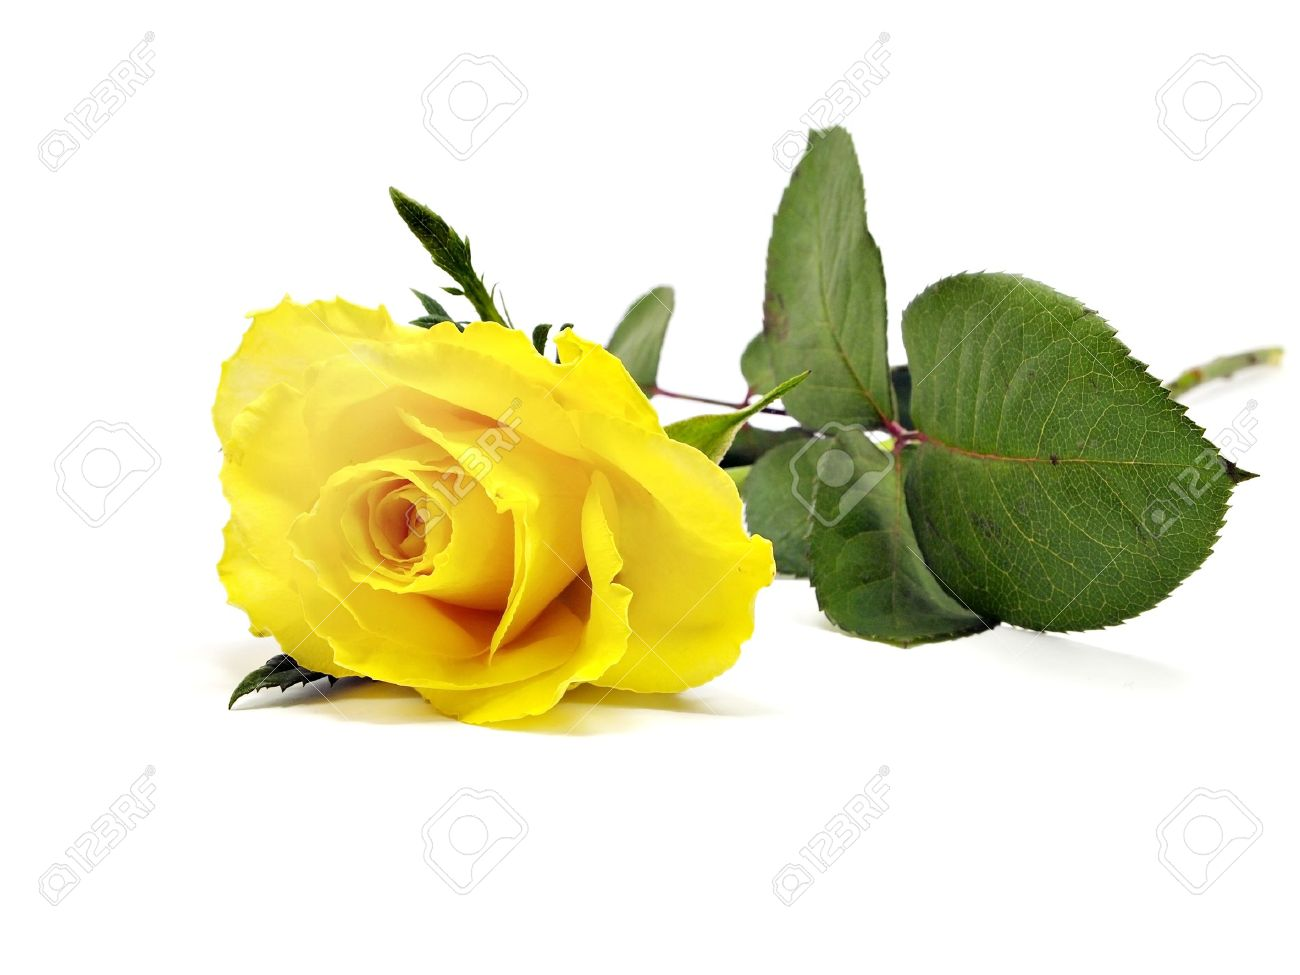 yellow rose stock photos. royalty free yellow rose images